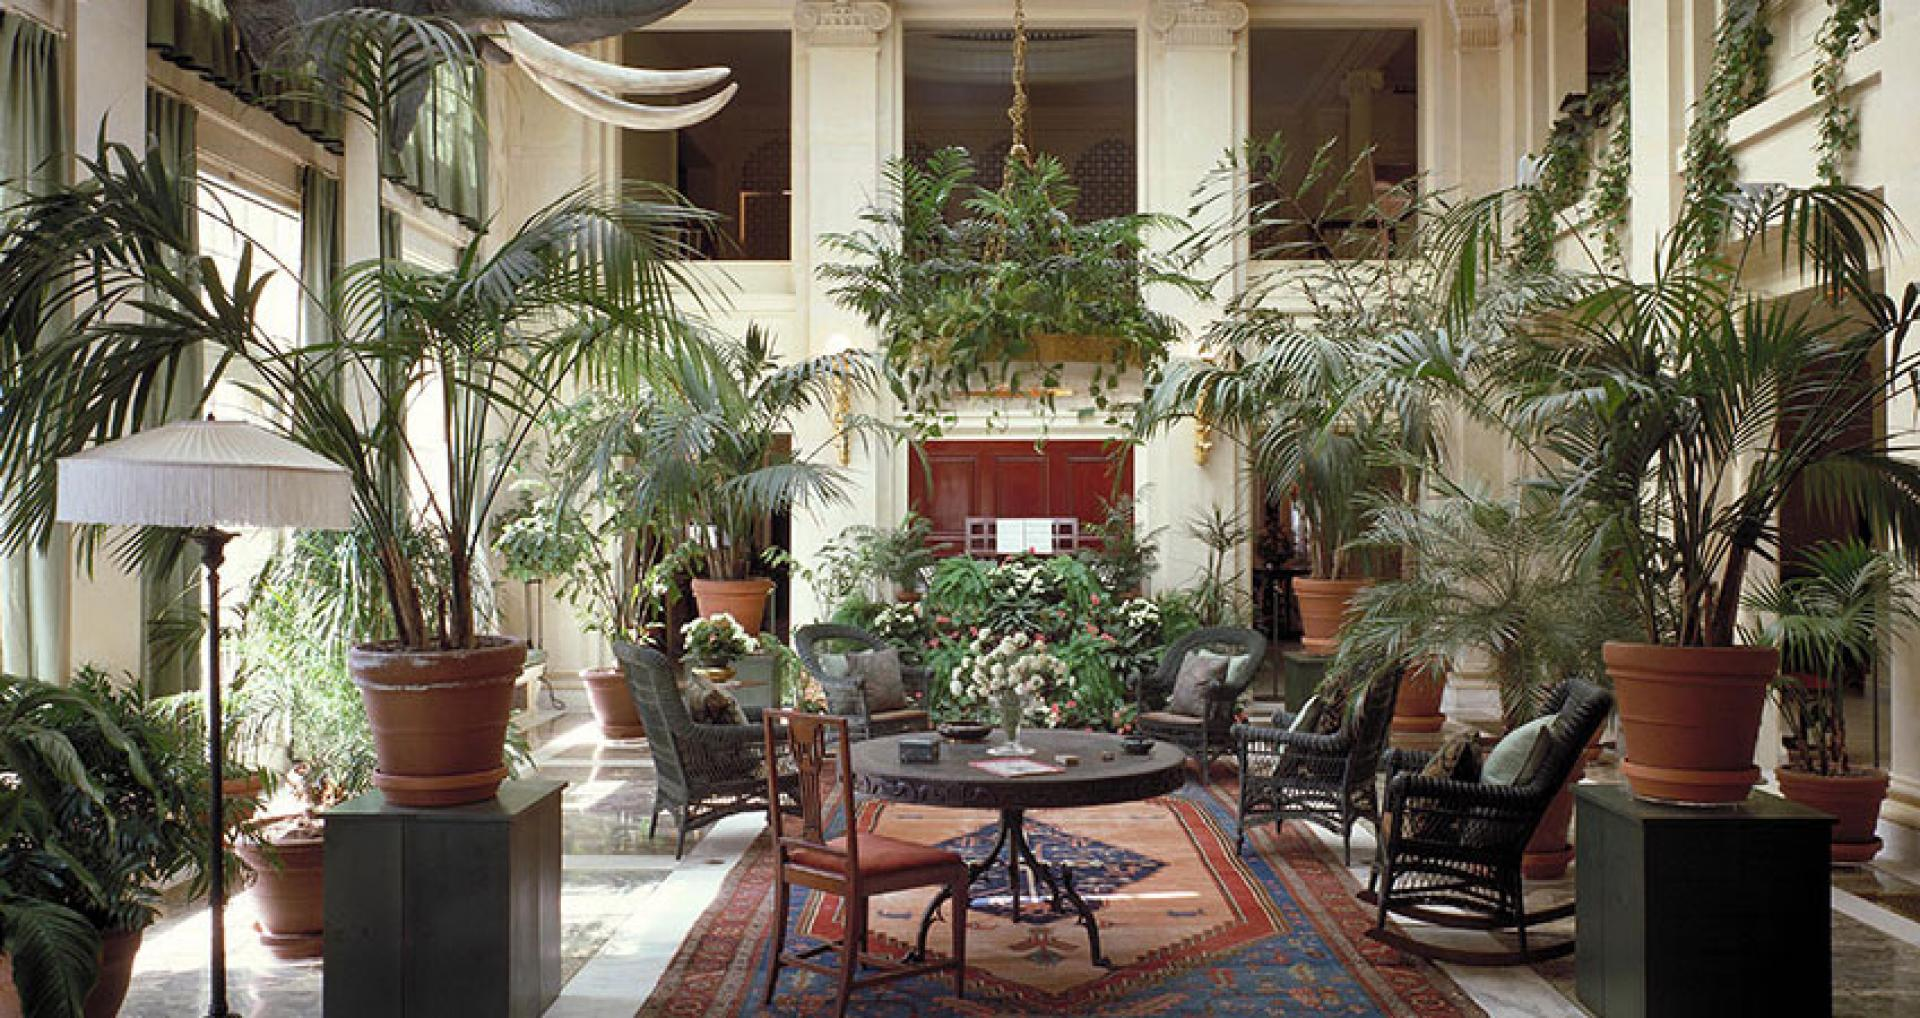 View of the Eastman Museum conservatory